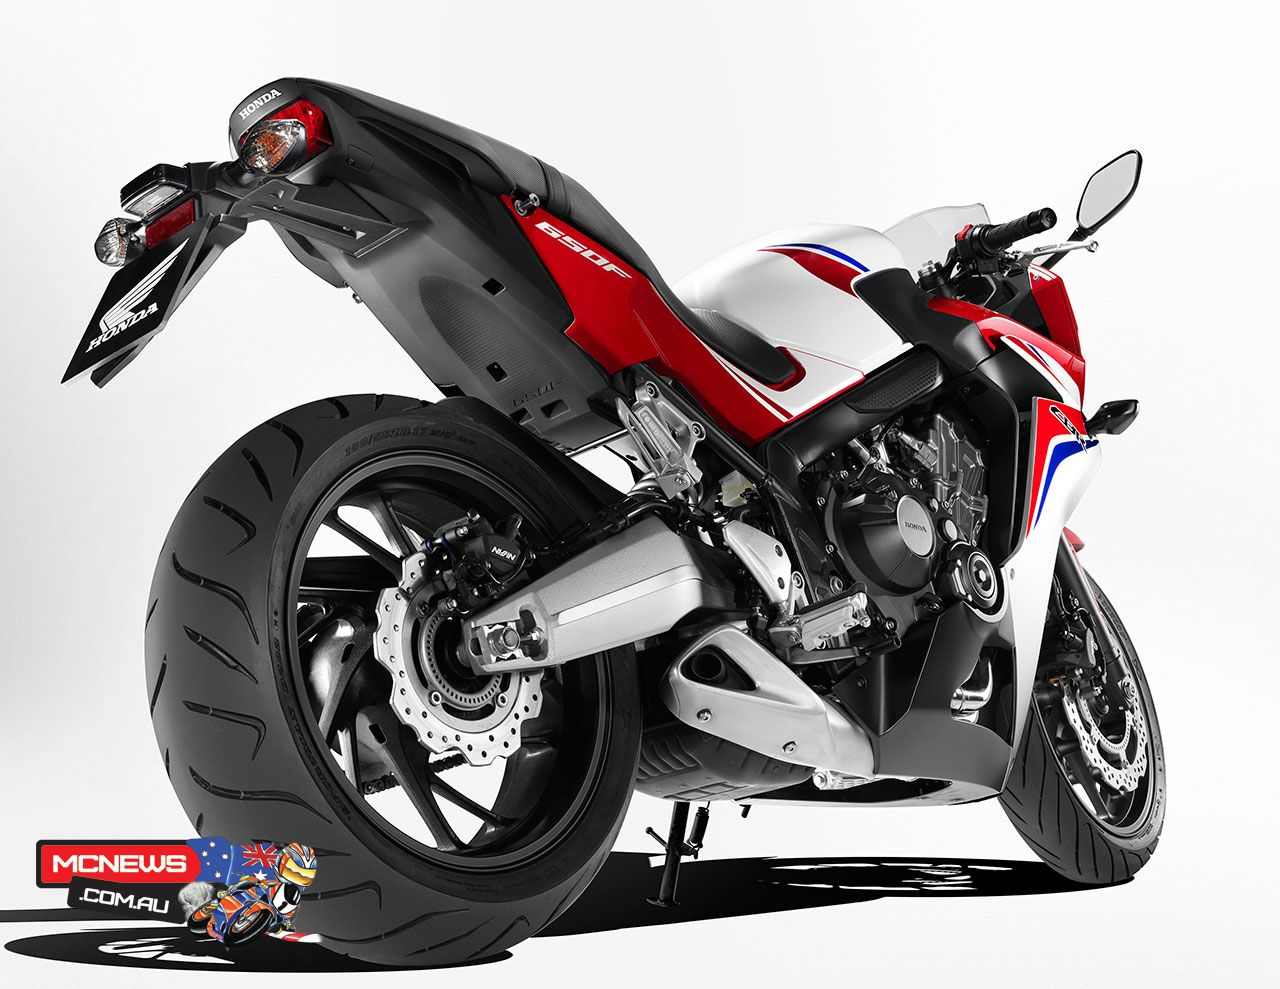 HondaCBR650Fhdwallpapers Honda CBR650F Wallpaper